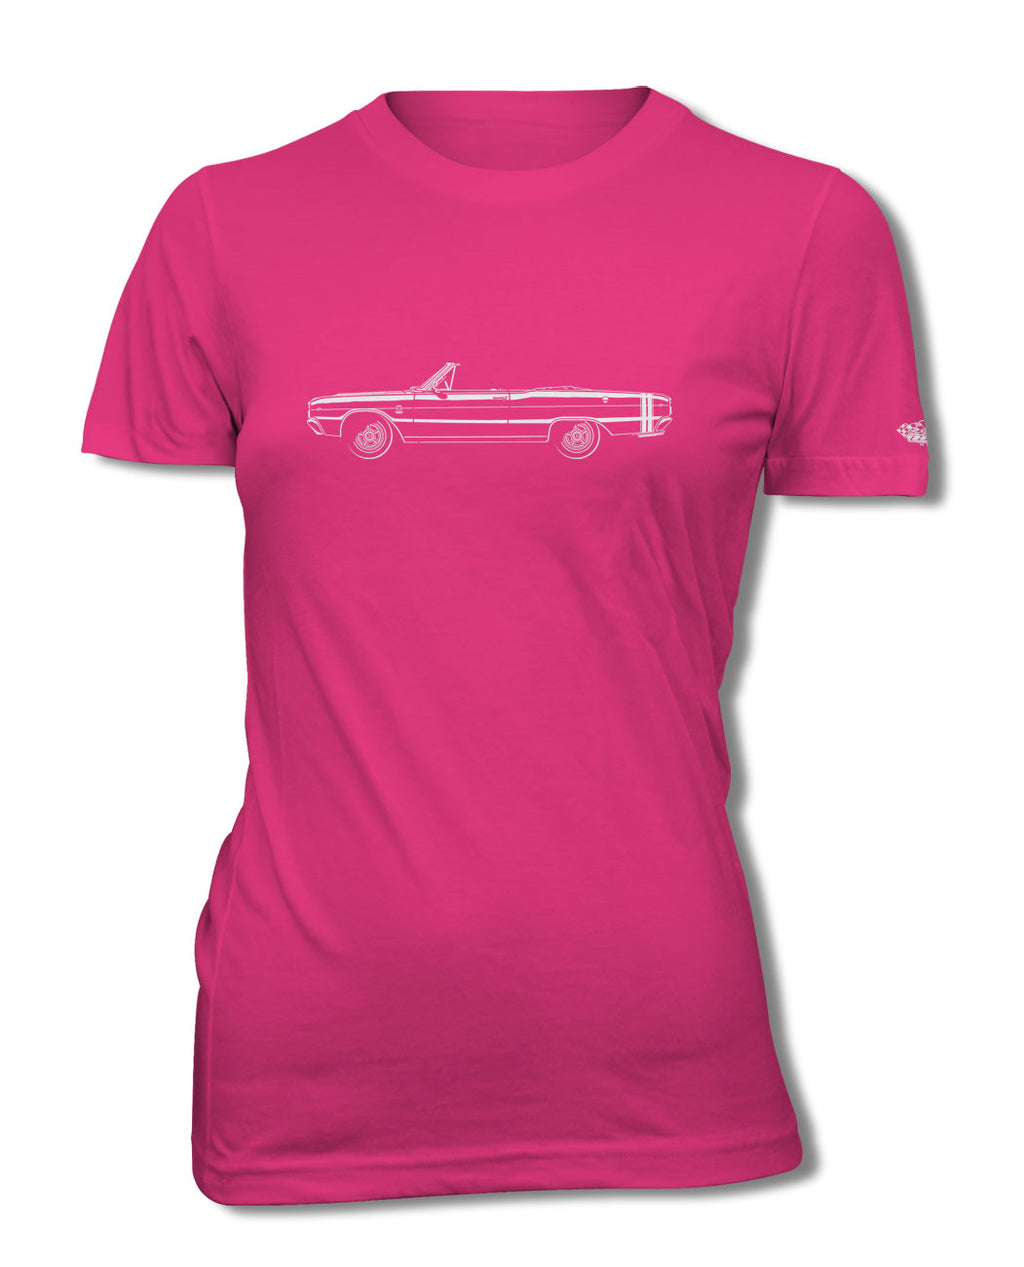 1968 Dodge Dart GTS Convertible T-Shirt - Women - Side View